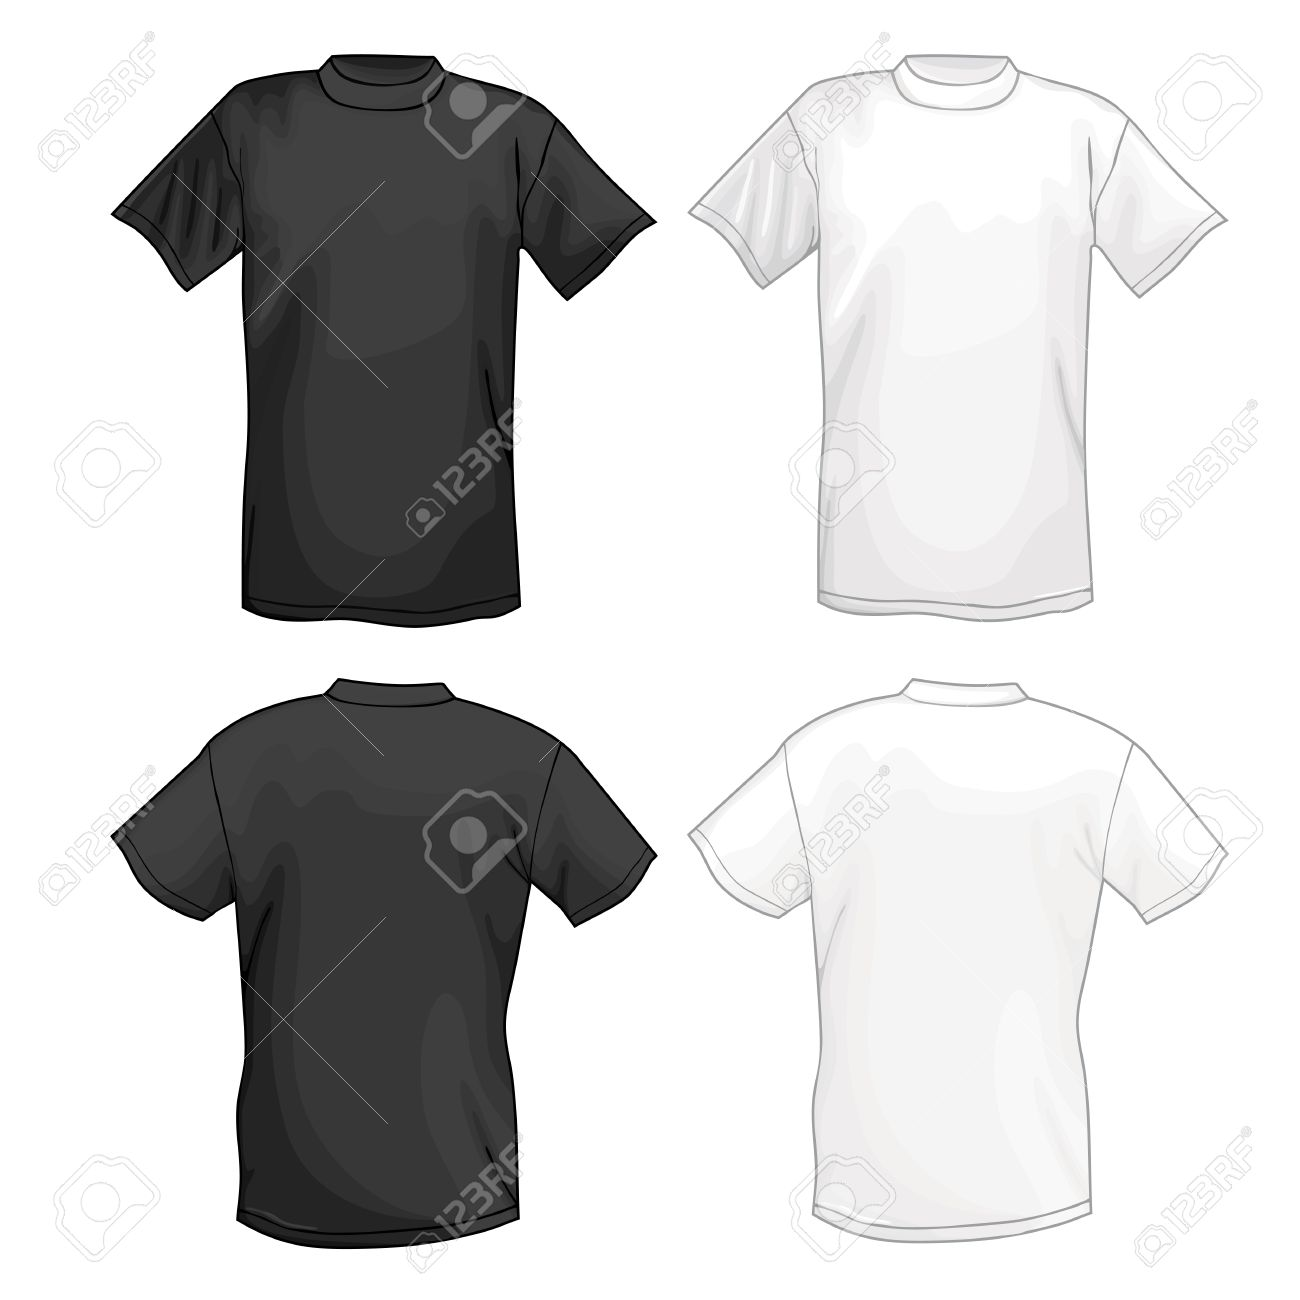 Design t shirt transfer template - Design T Shirt Transfer Template T Shirt Transfer Template Contegri